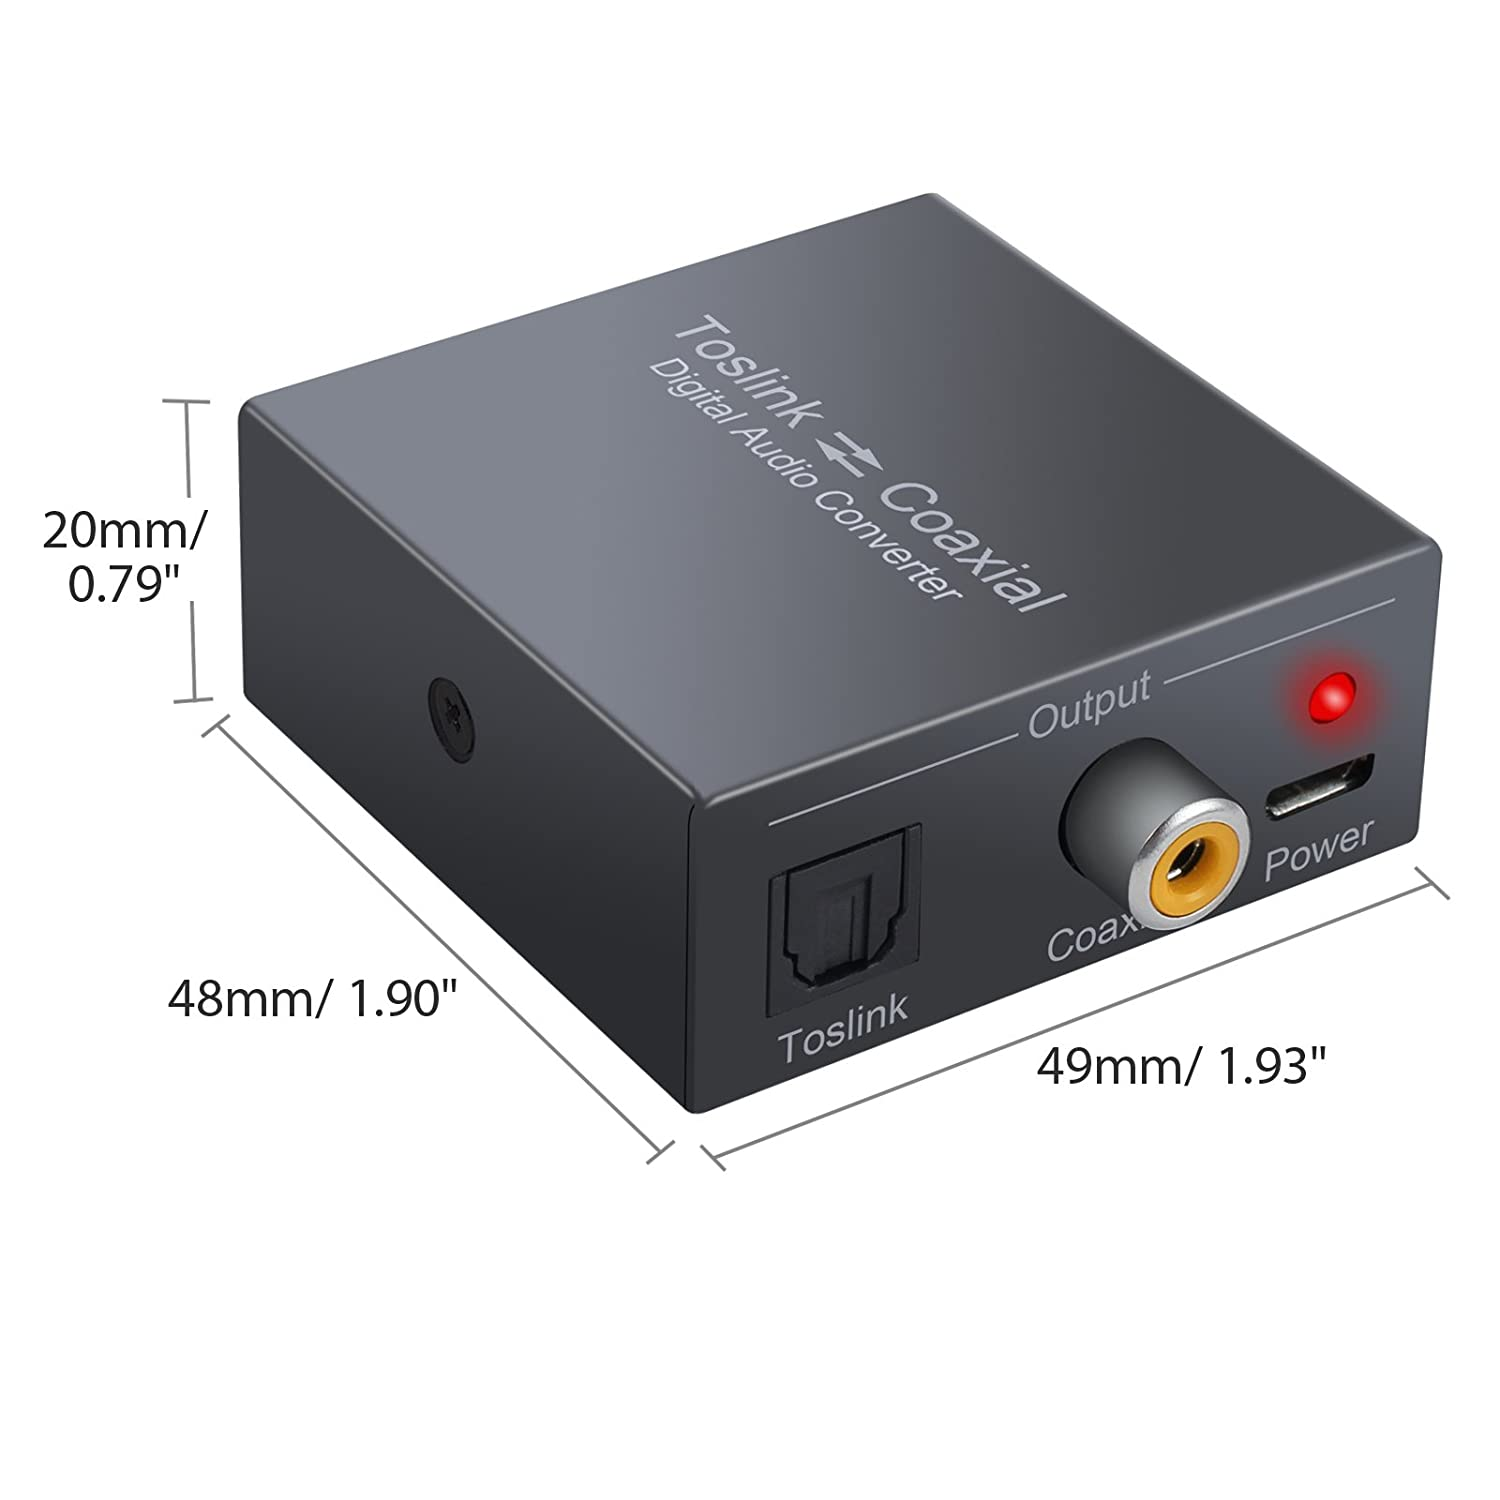 Amazon.com: CAMWAY Digital Audio Converter Optical SPDIF Toslink to Coaxial and Coaxial to Optical SPDIF Toslink Bi-derectional Swither SPDIF Coaxial and ...